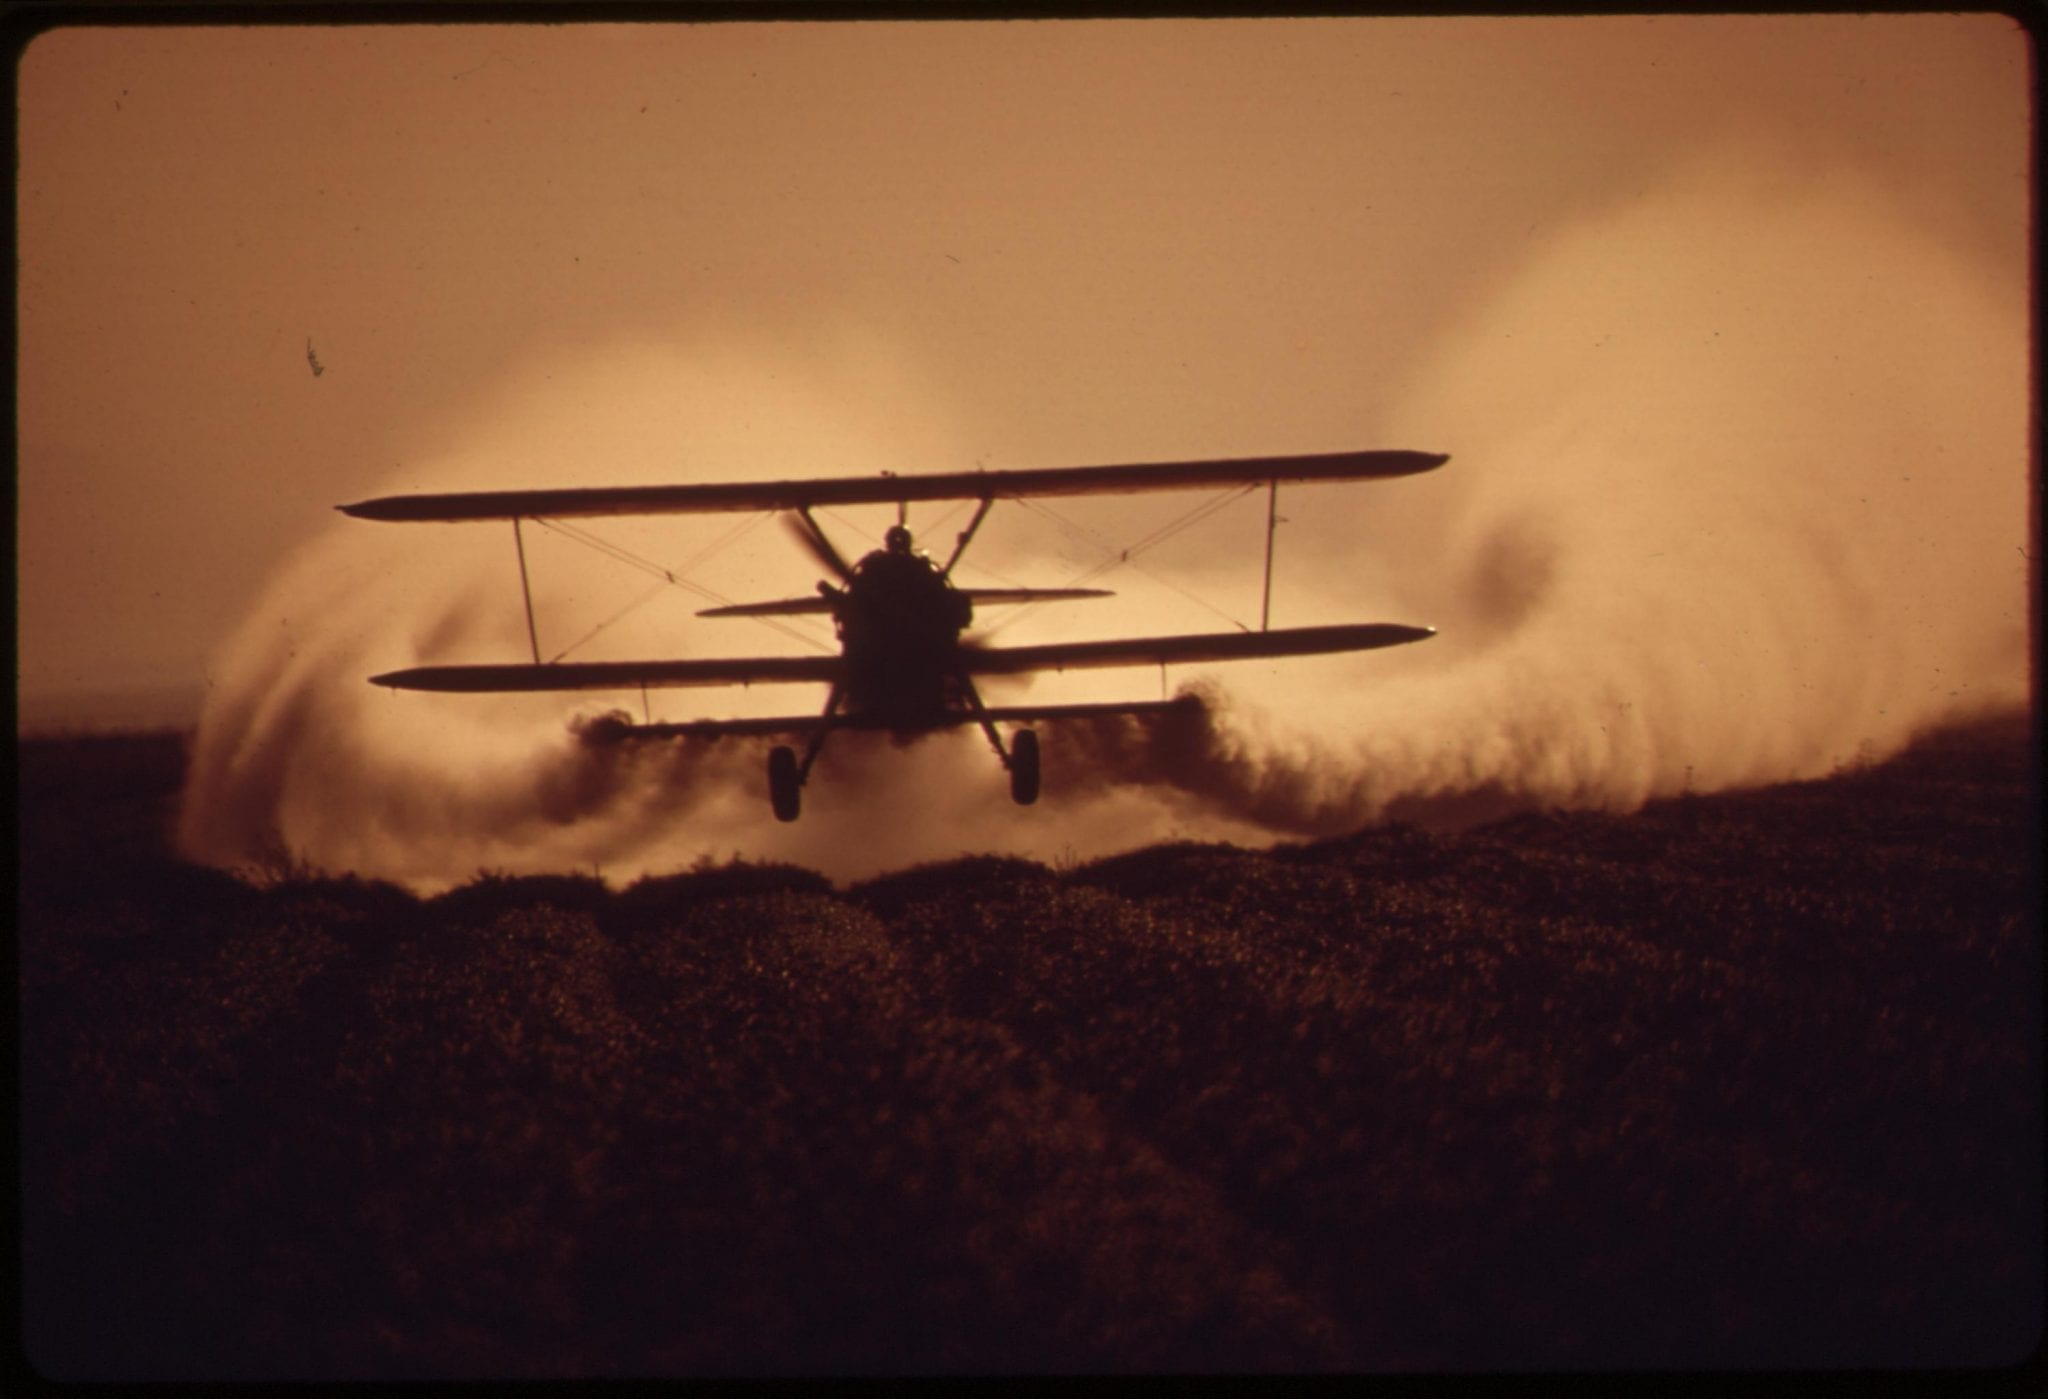 Crop dusting; image by Charles O'Rear/The U.S. National Archives, via Flickr, Public domain.